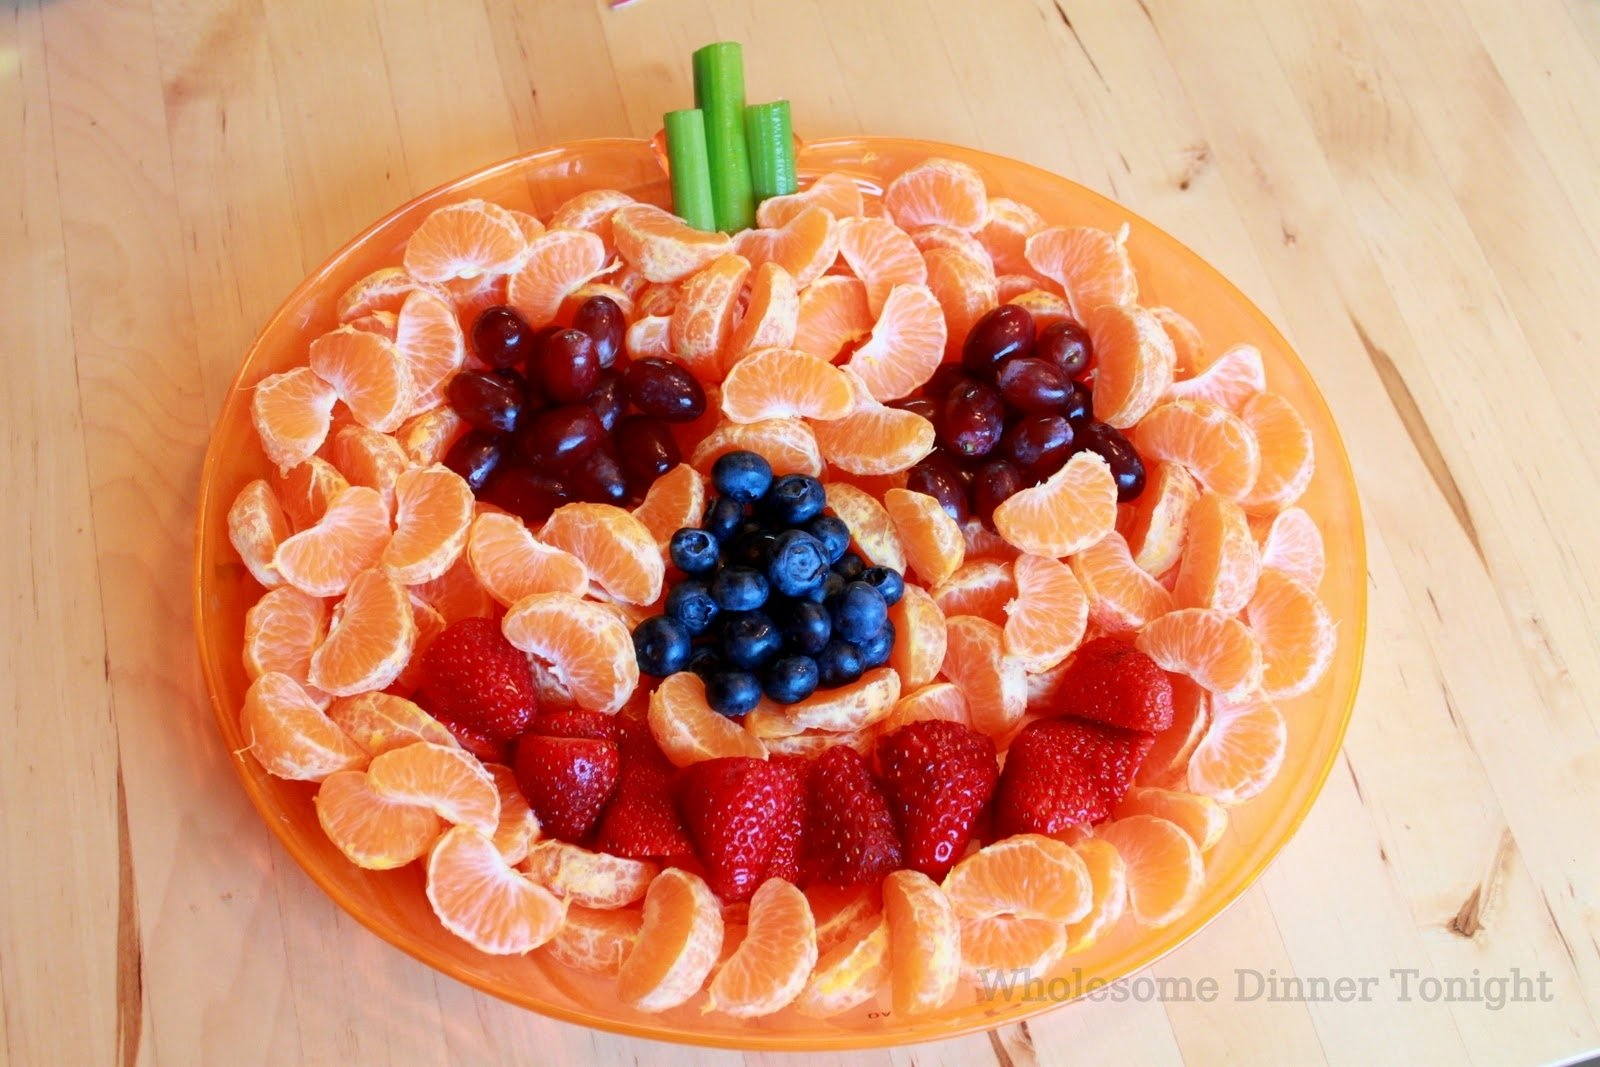 10 Most Popular Halloween Snack Ideas For Adults top 15 paleo halloween treats party food ideas 3 2020